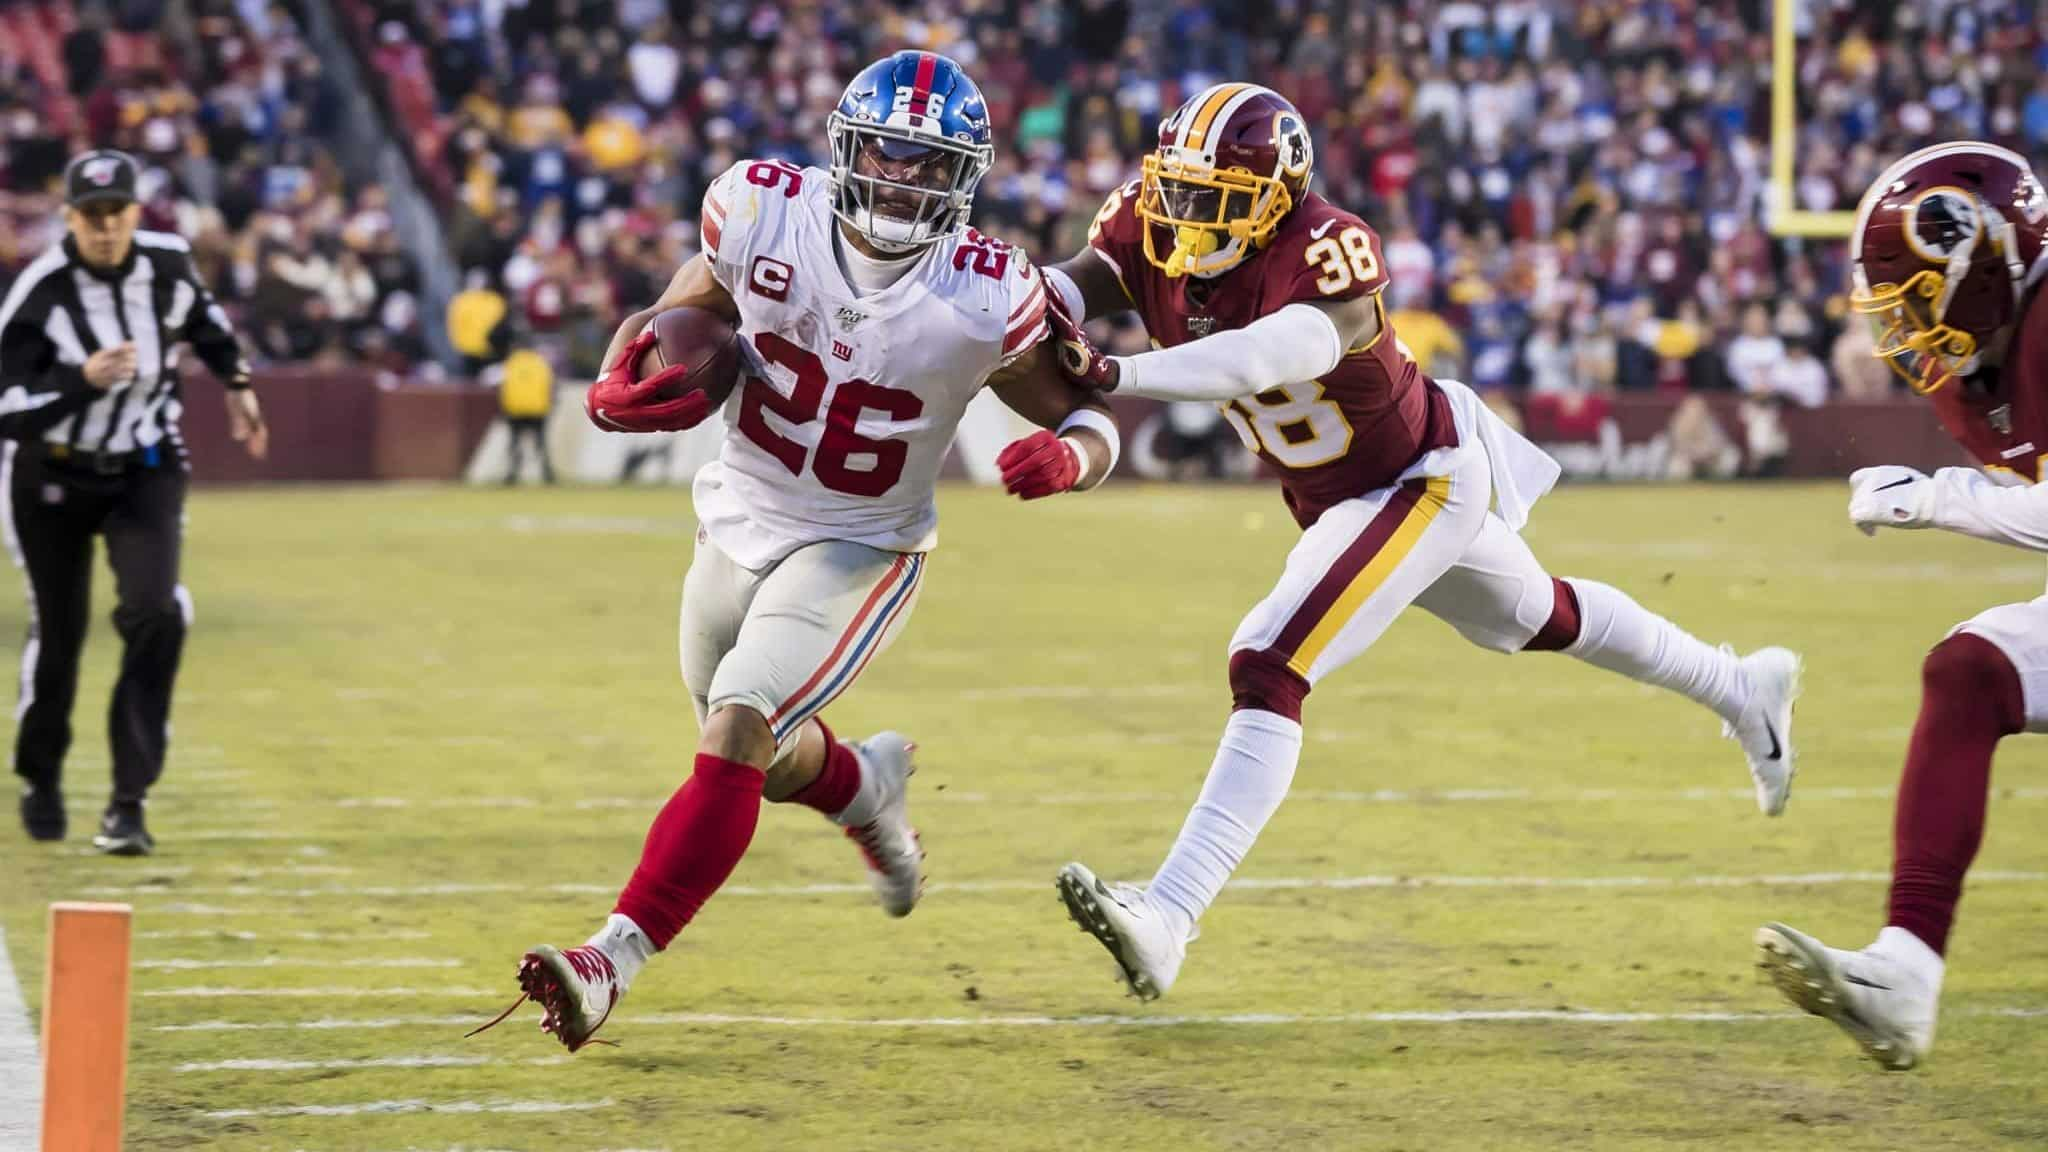 LANDOVER, MD - DECEMBER 22: Saquon Barkley #26 of the New York Giants is shoved out of bounds by Kayvon Webster #38 of the Washington Redskins during overtime at FedExField on December 22, 2019 in Landover, Maryland.